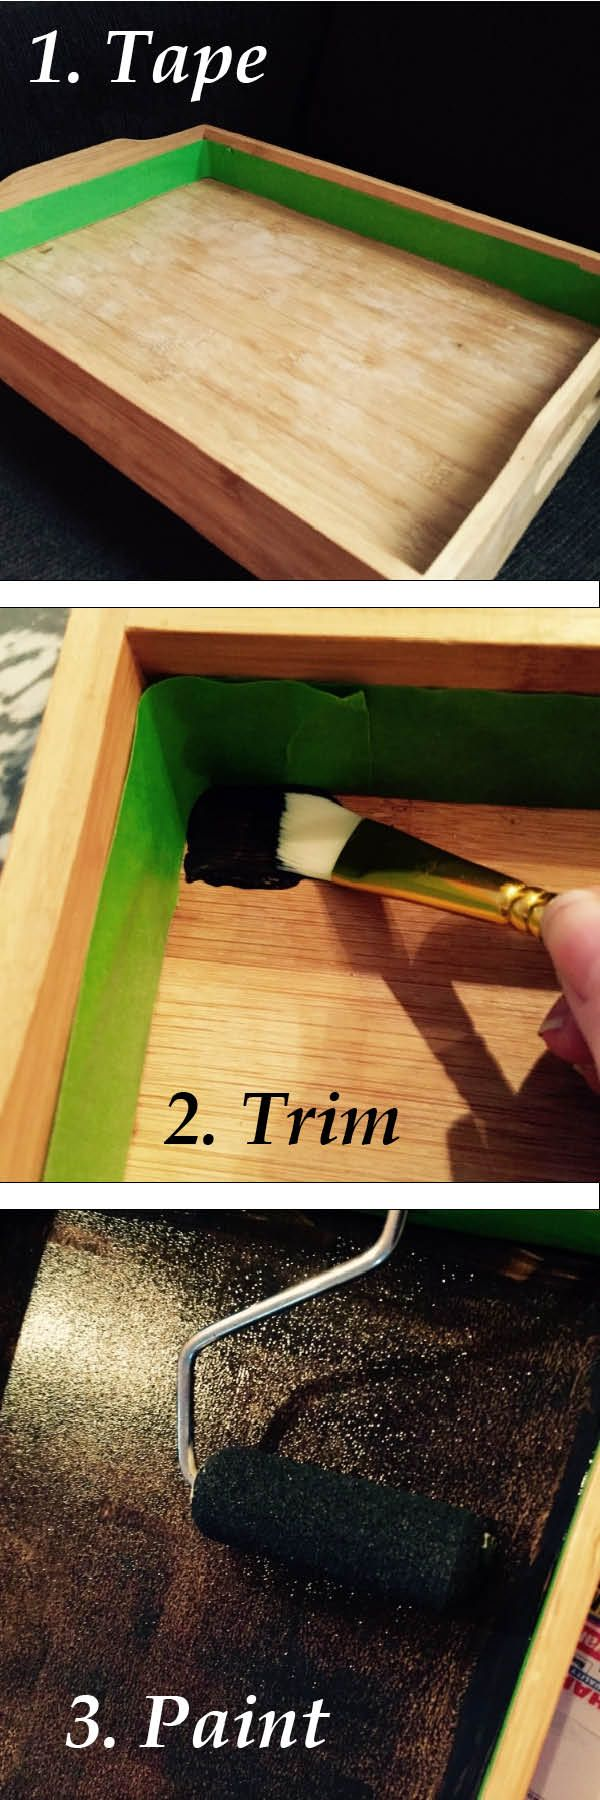 Today I want to share with you an easy DIY chalkboard tray that you can  easily pull together in an afternoon for Thanksgiving. It's a simple and  thoughtful way to dress up your table or make an impression as a host gift.  Make sure to stick around to the end for 18 other DIY gifts as part of th